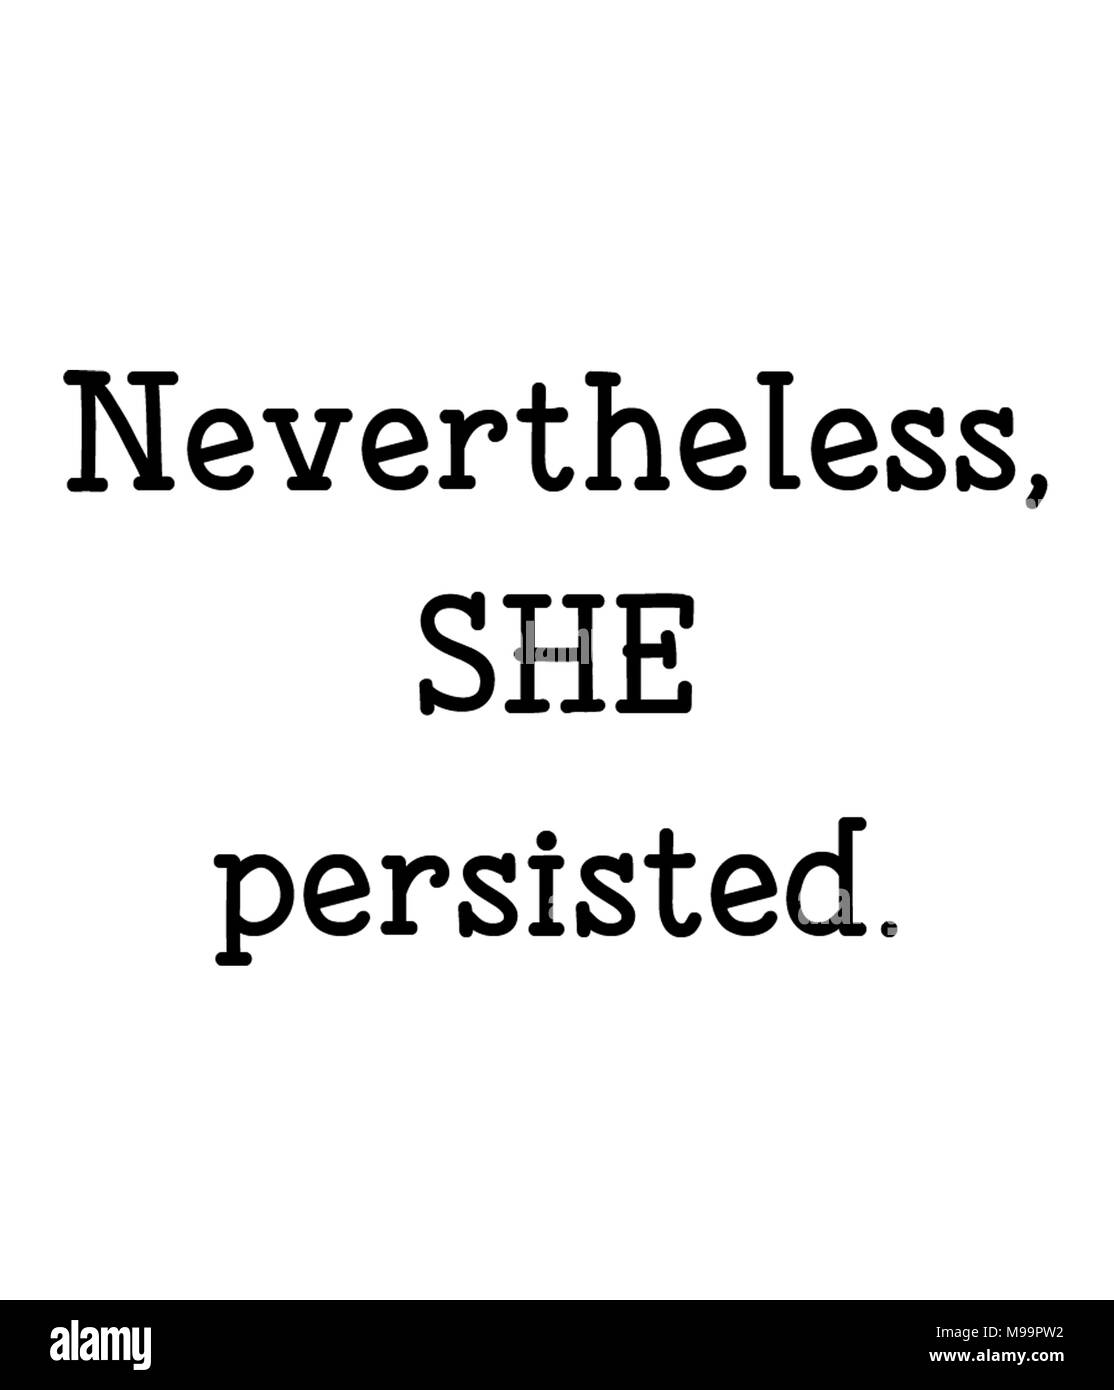 Nevertheless, SHE persisted. - Stock Image